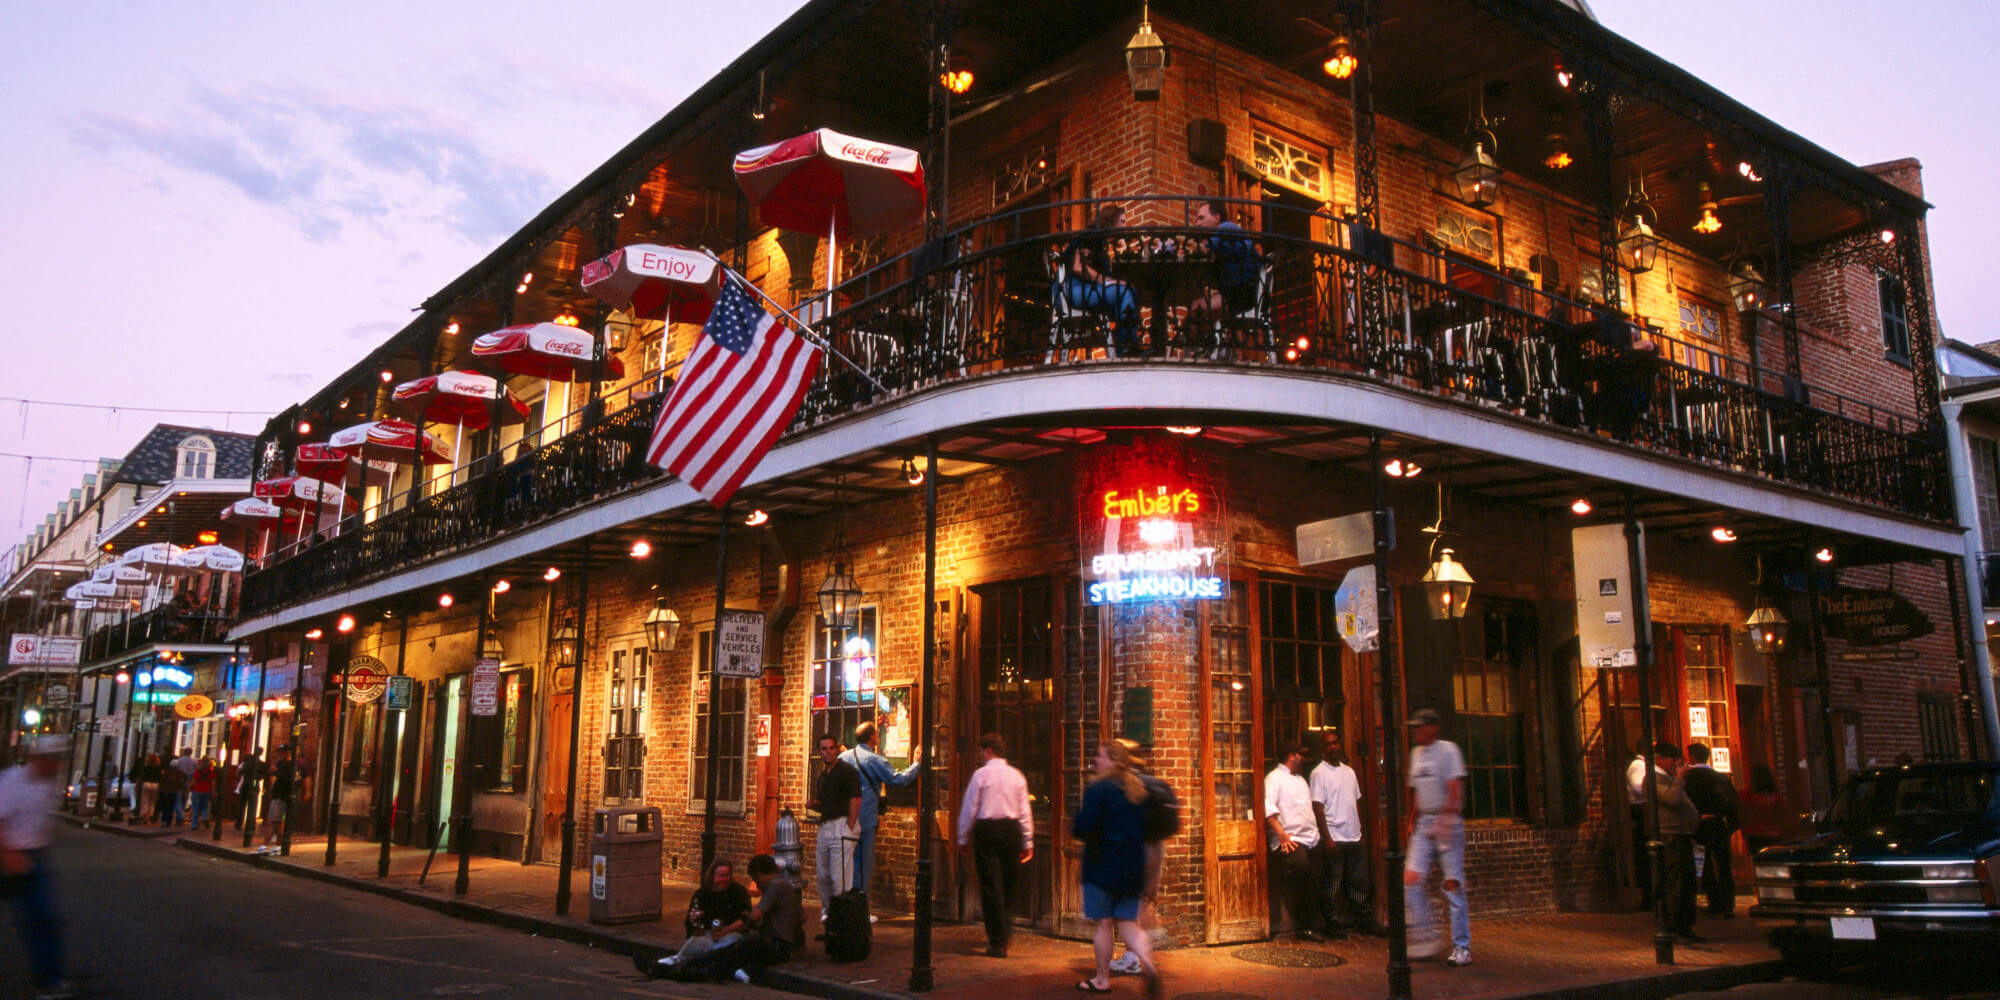 Visitors network our top 15 spring break destinations in the us